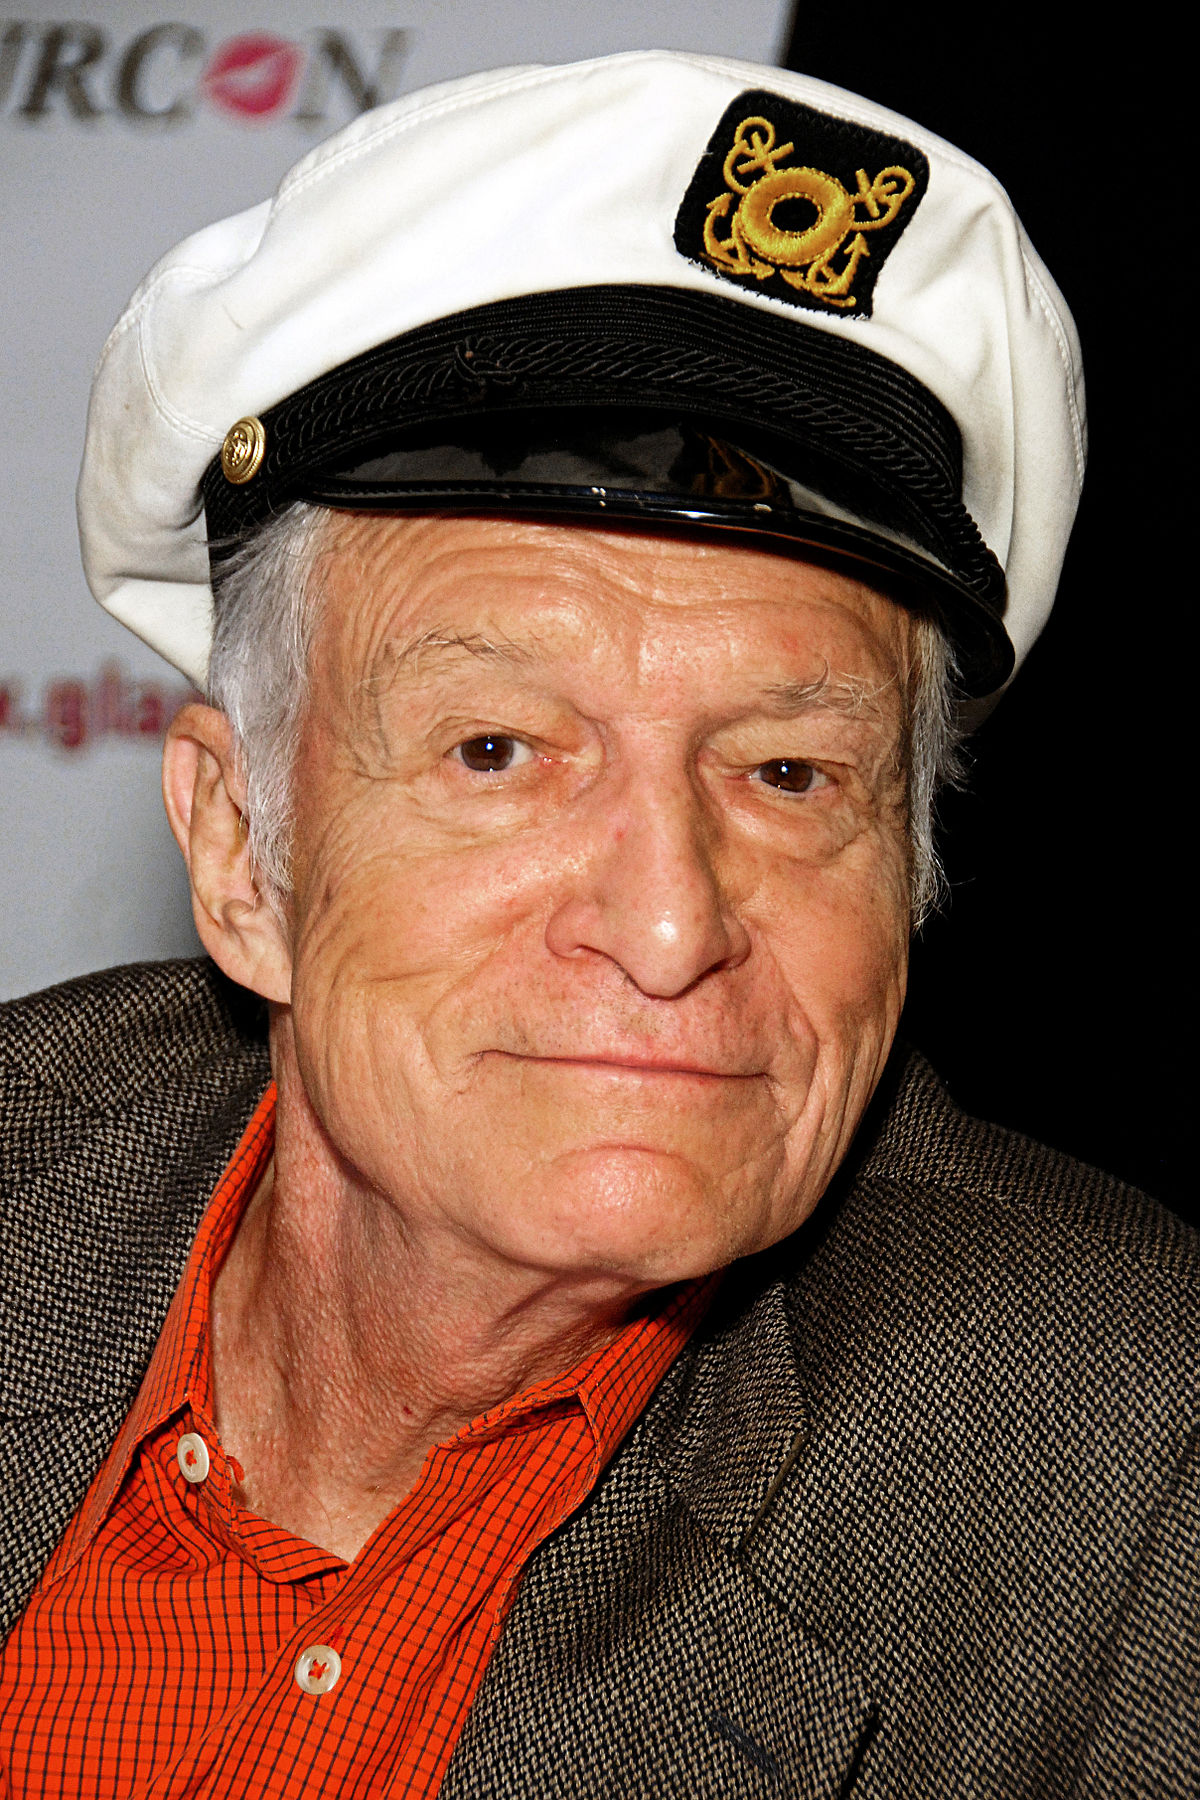 Playboy magazine founder Hugh Hefner has died